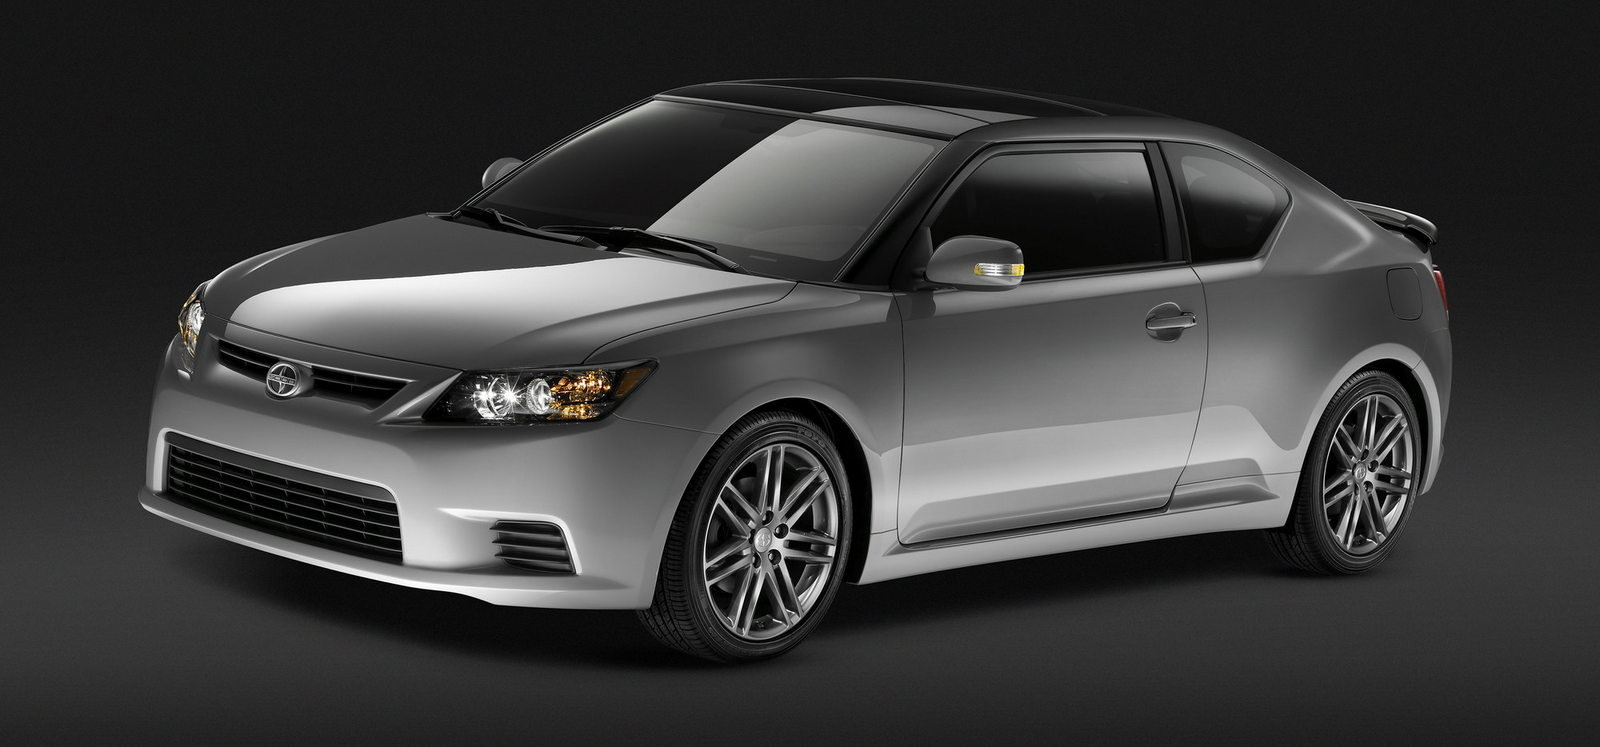 2011 scion tc review top speed. Black Bedroom Furniture Sets. Home Design Ideas